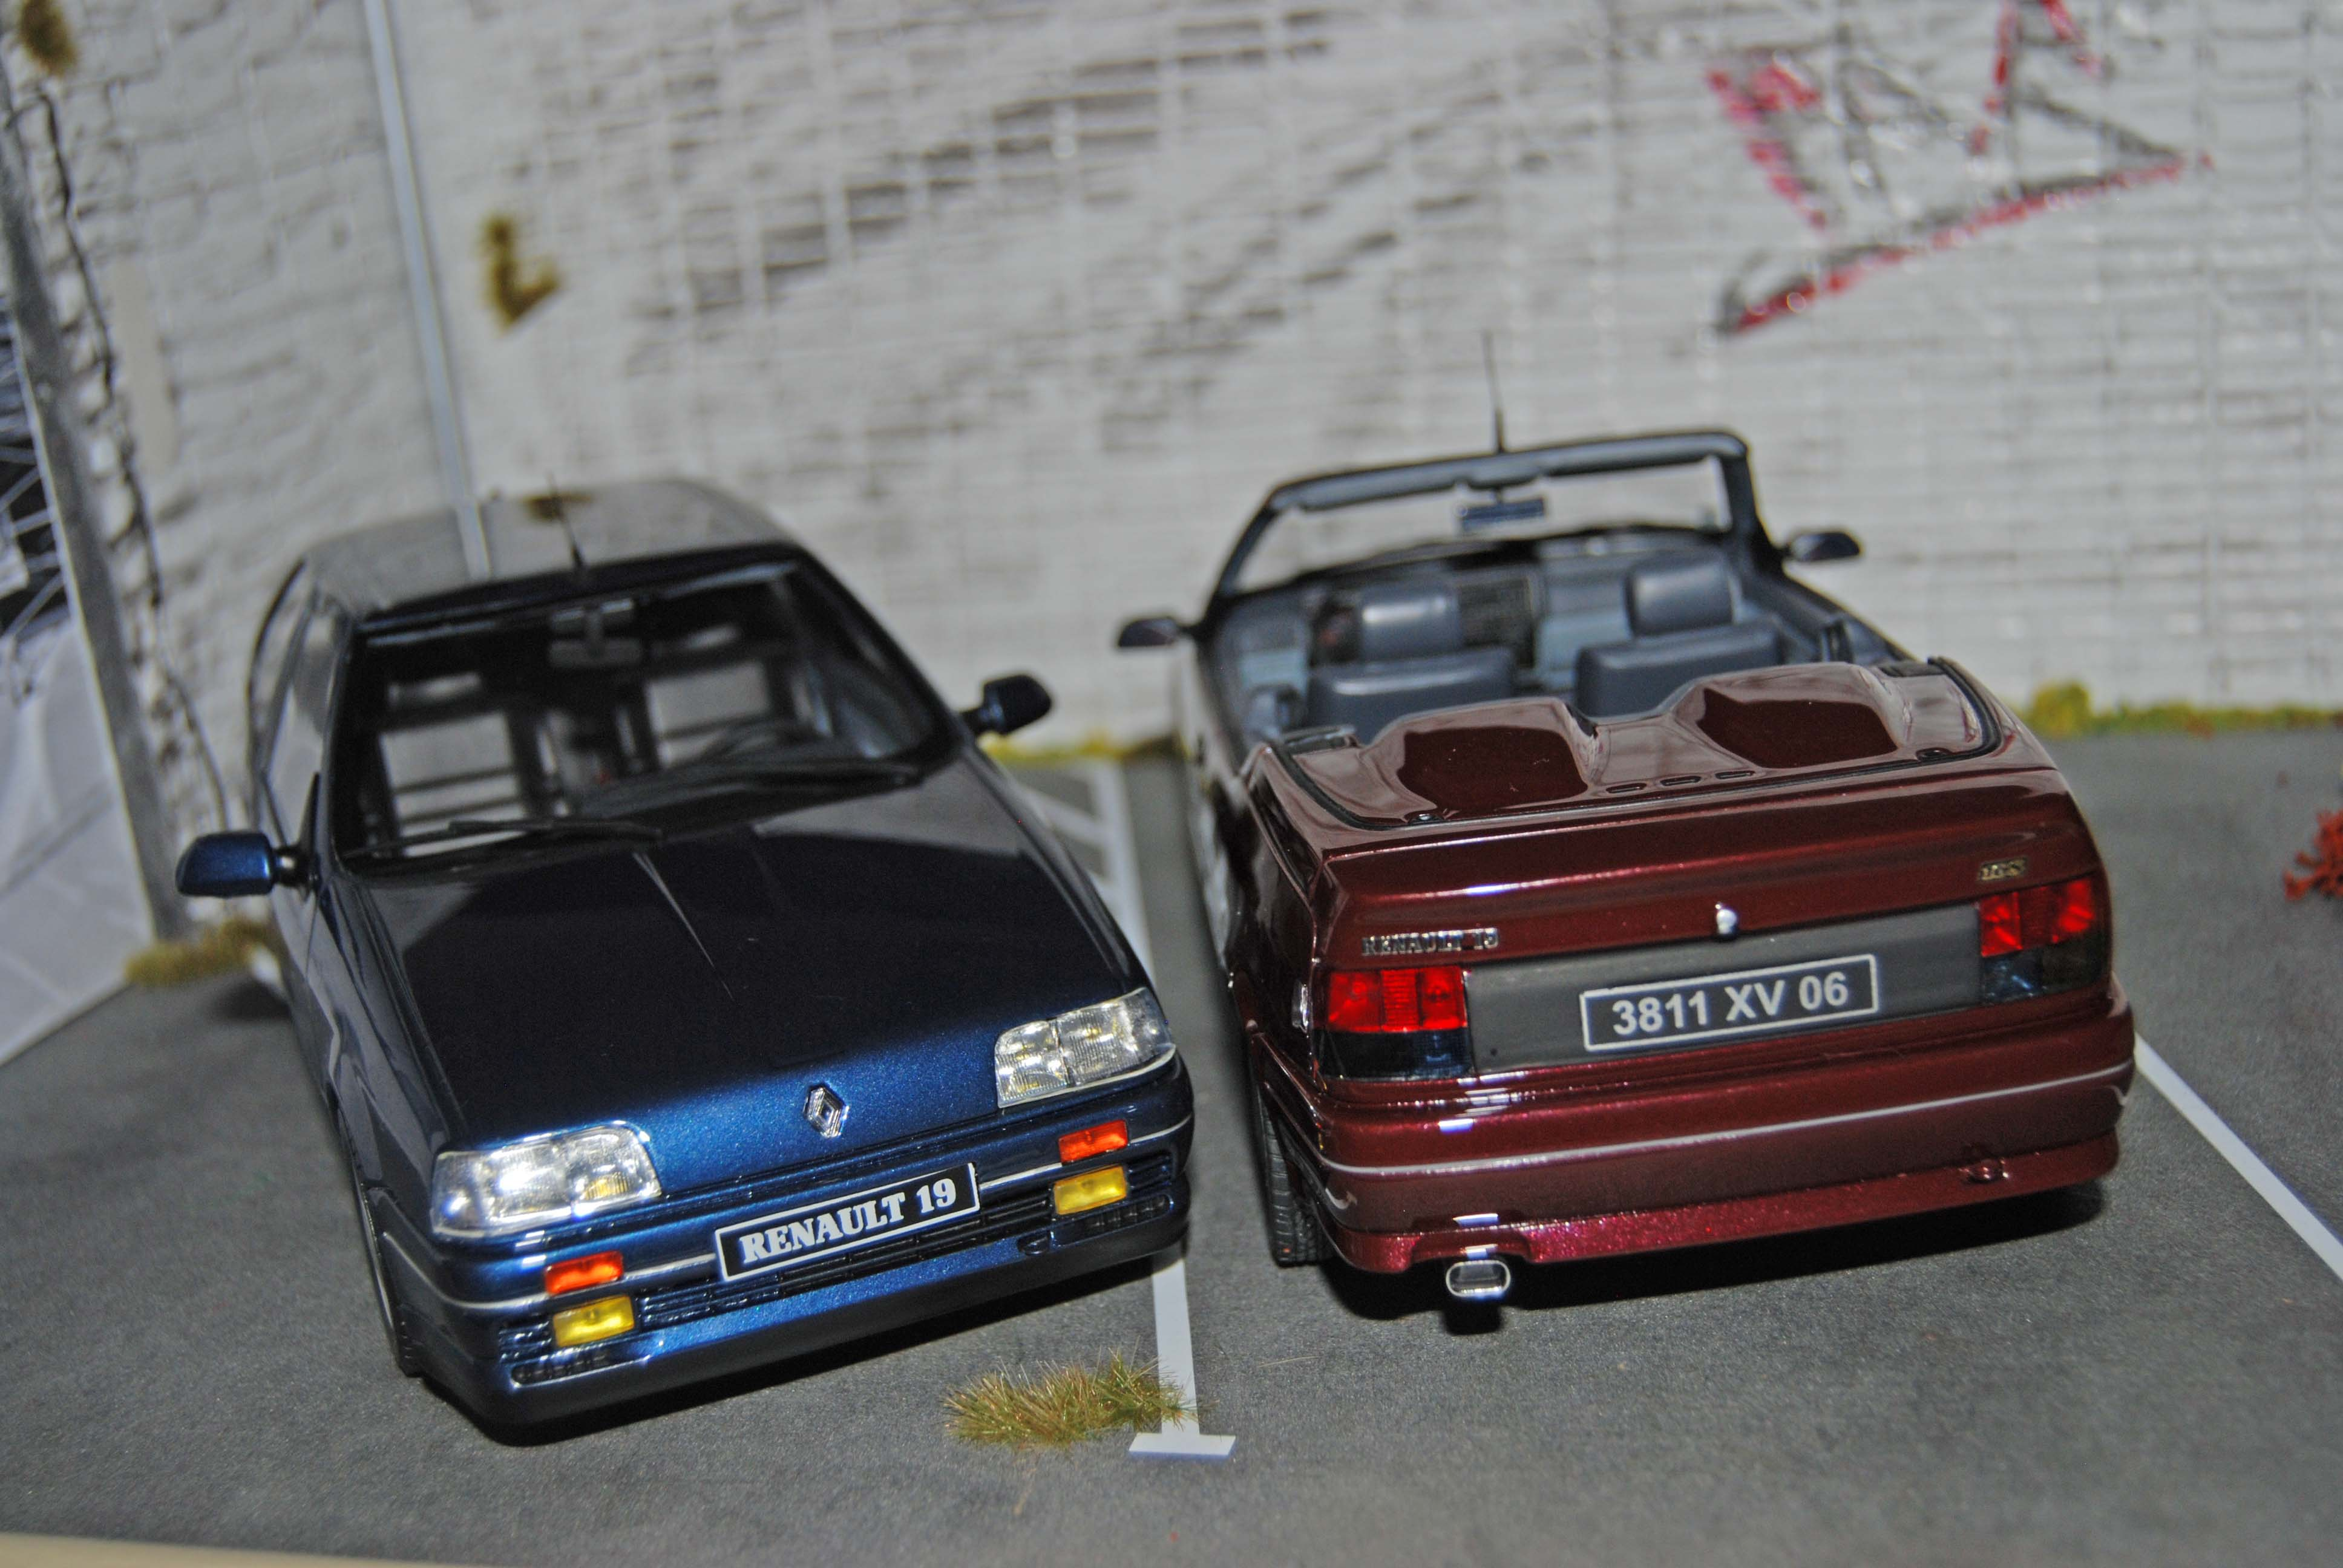 1991 Renault 19 Convertible 16S photo - 1